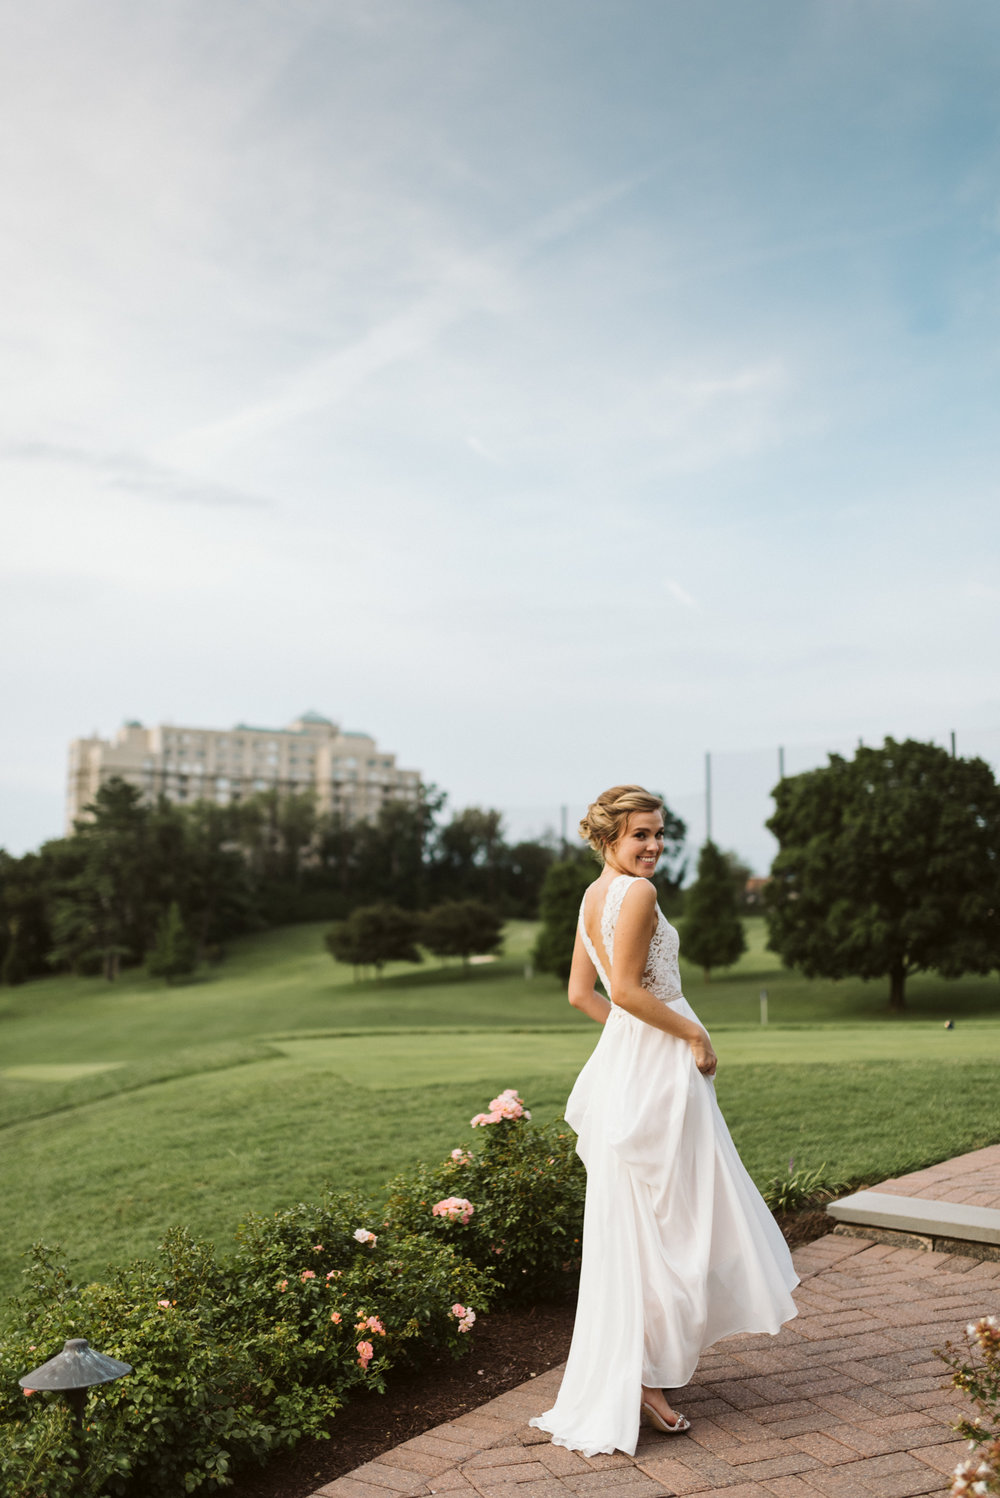 beautiful bride walking down path at sunset with green grass and flowers in bhldn dress